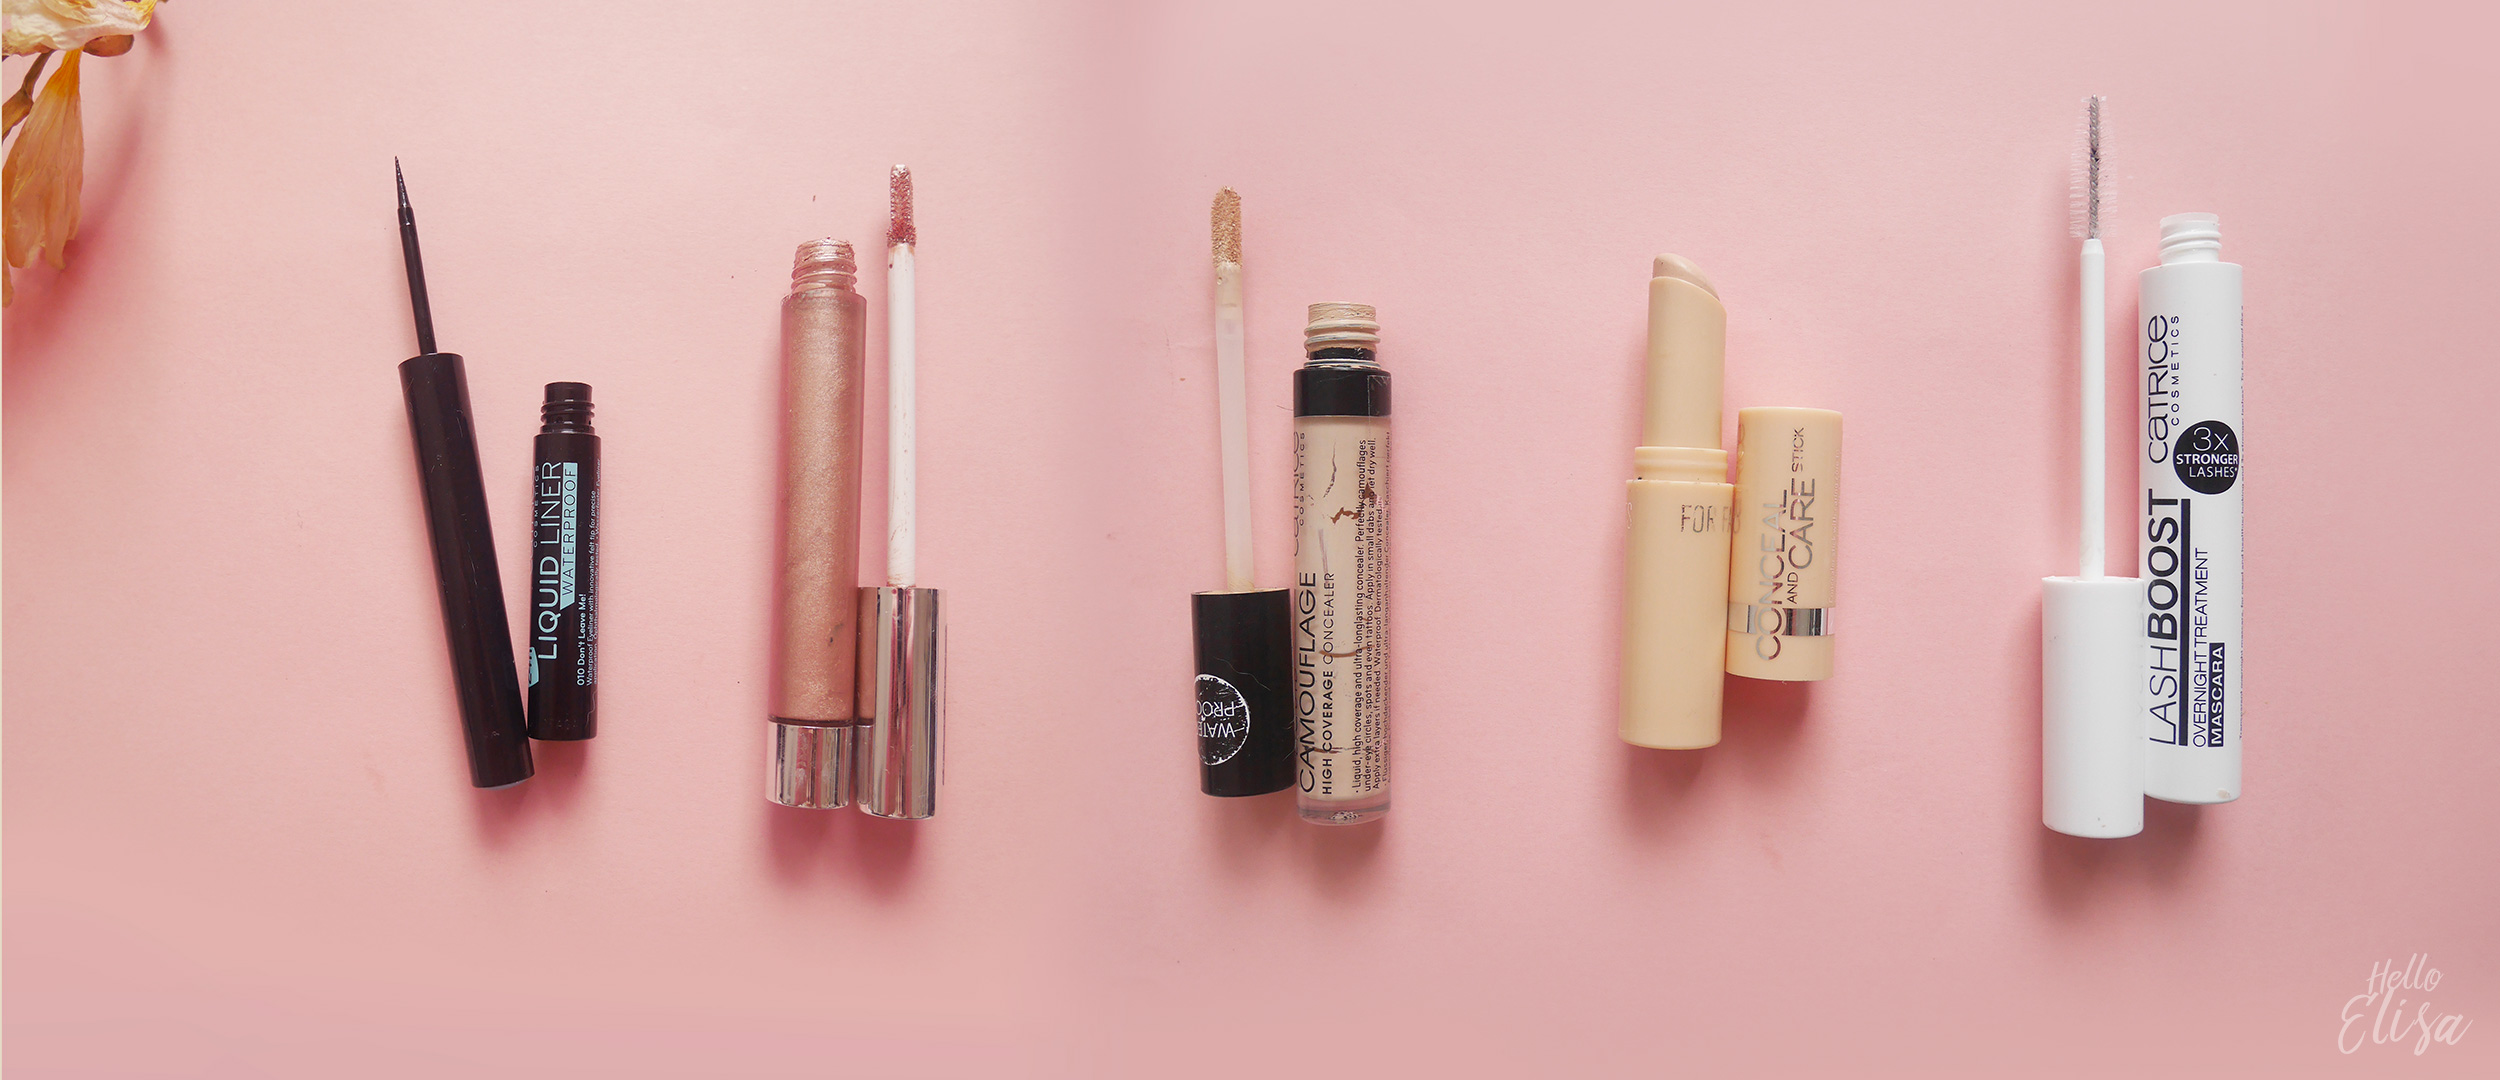 Catrice produits maquillage